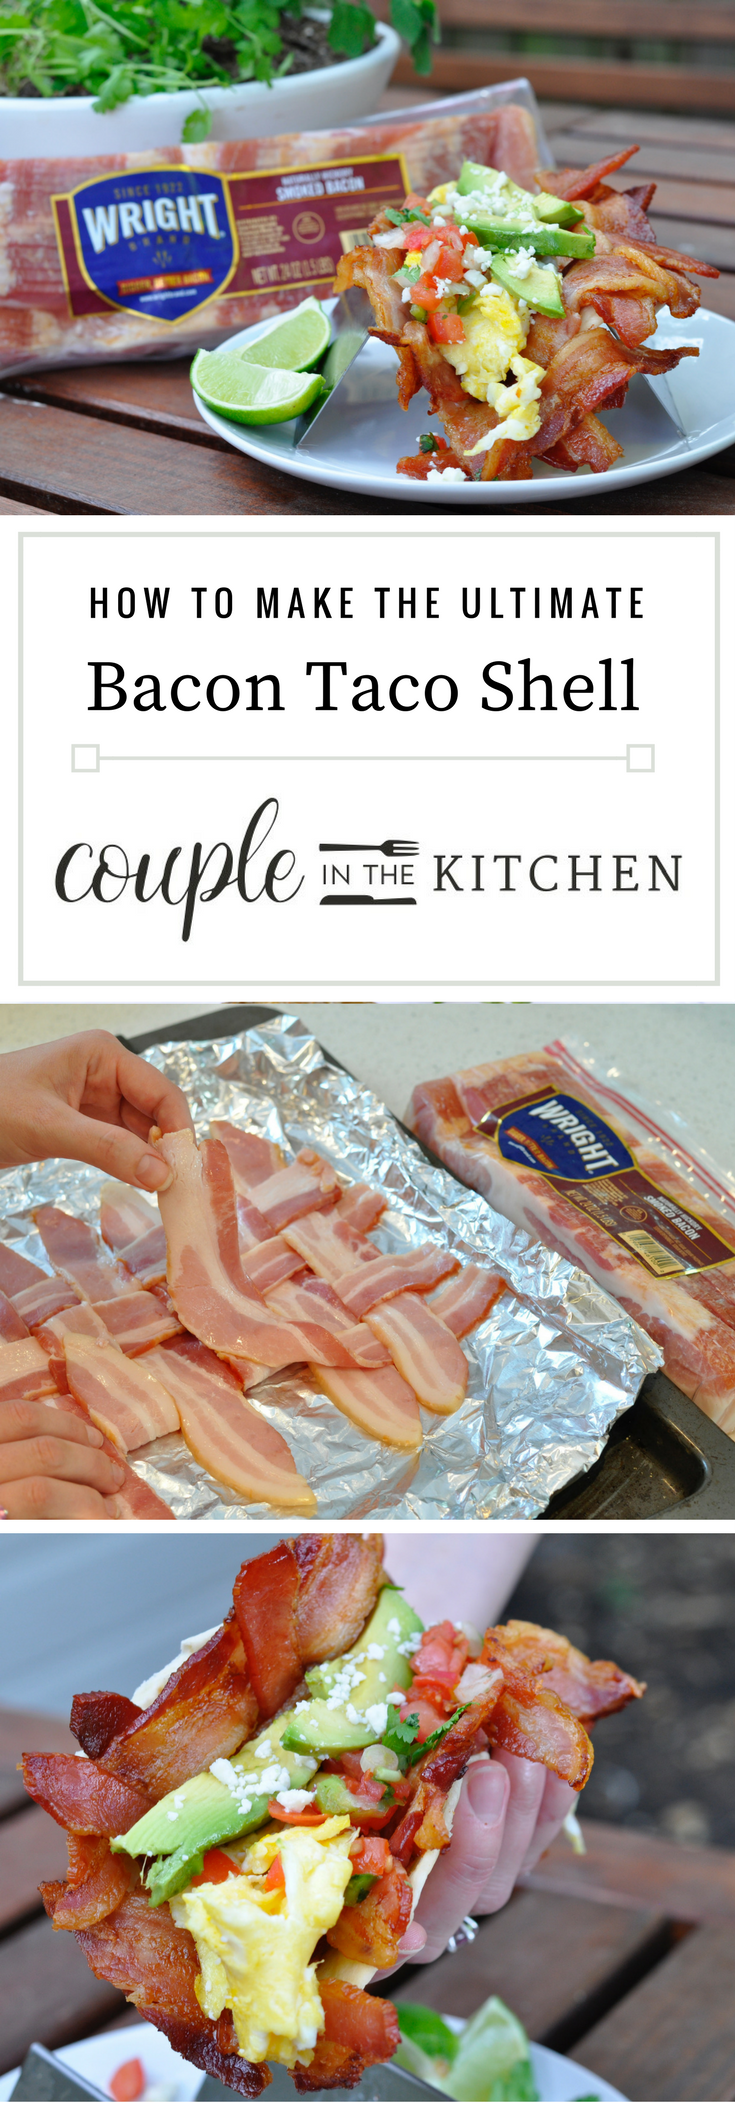 Bacon Taco Shells - The Ultimate Breakfast Taco | coupleinthekitchen.com